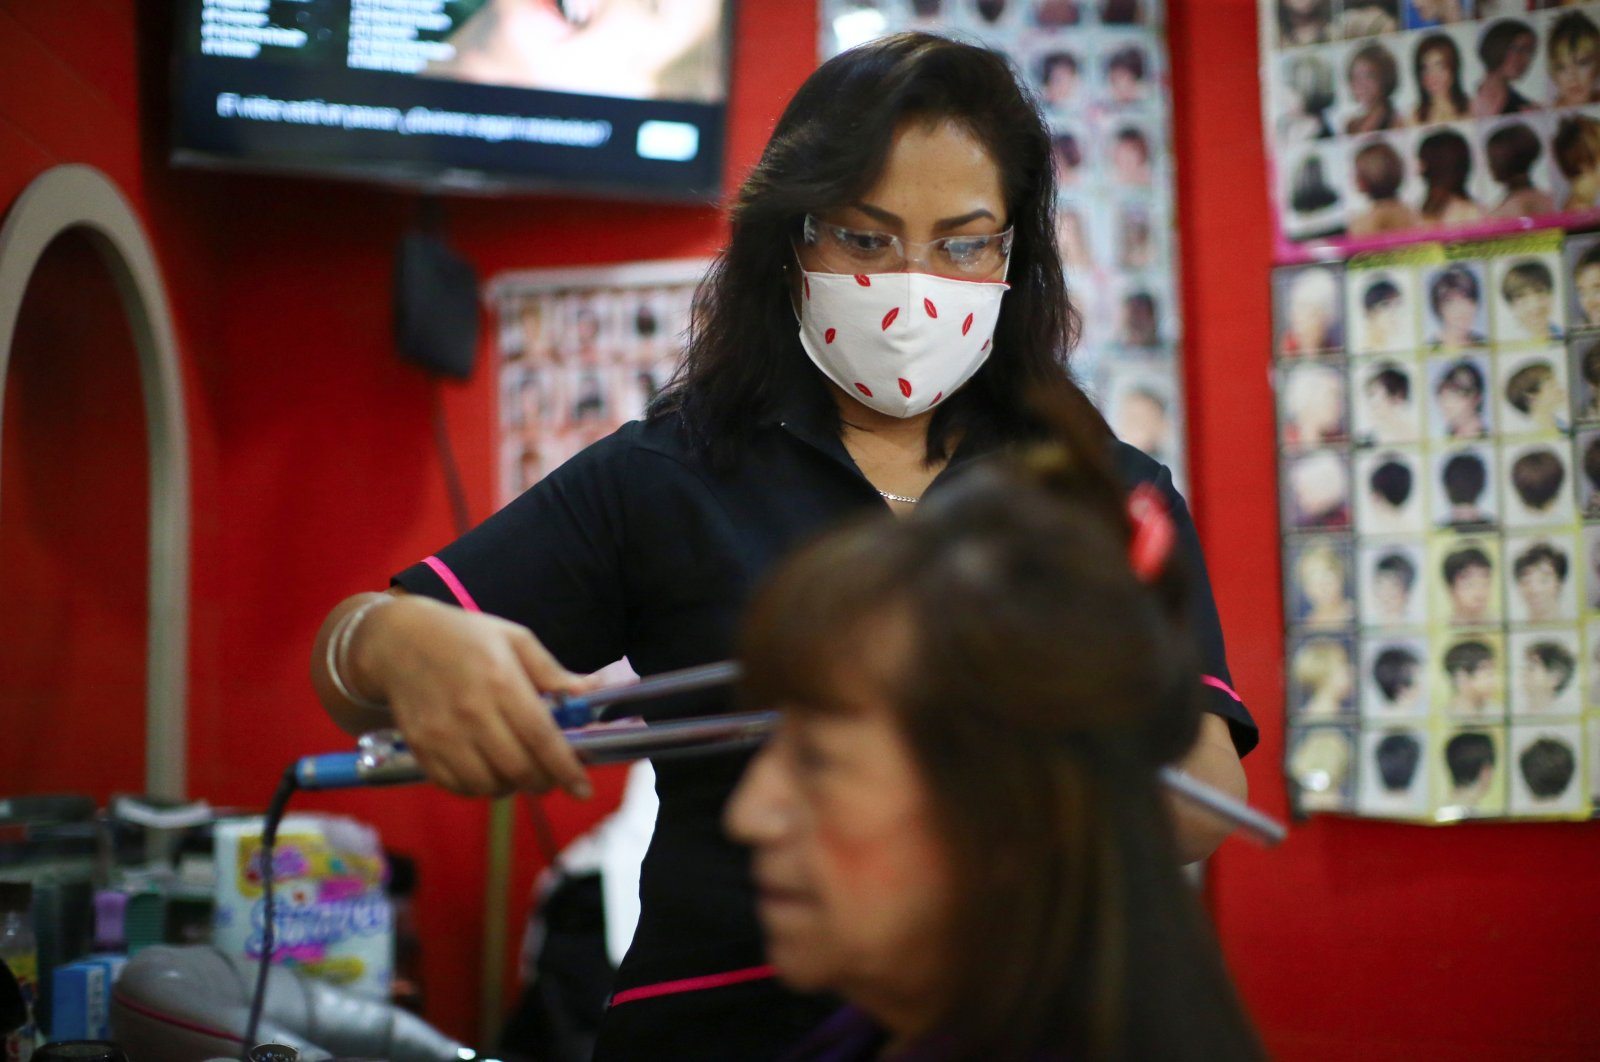 A stylist wearing a face mask combs a woman's hair at a beauty salon in Mexico City, Mexico, Sept. 22, 2020. (Reuters Photo)